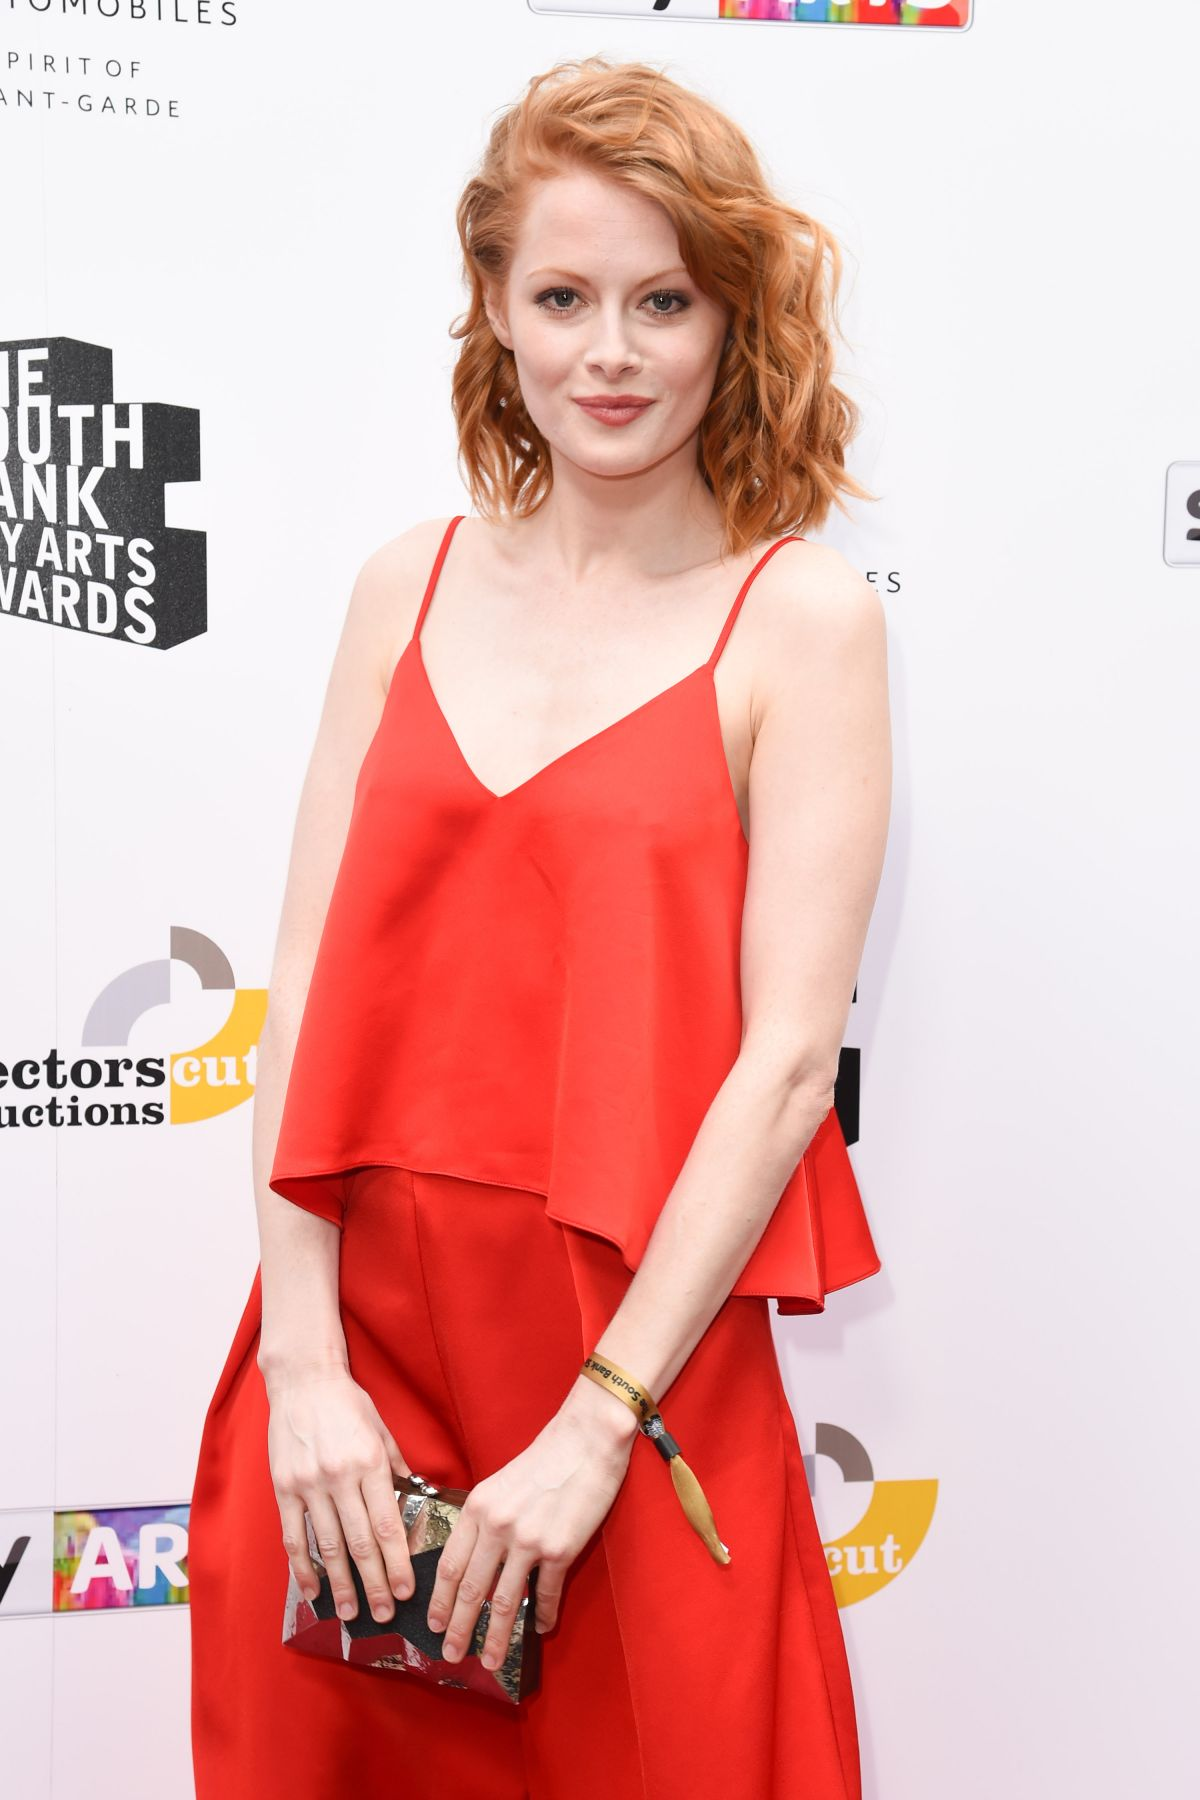 EMILY BEECHAM at South Bank Sky Arts Awards in London 07/09/2017